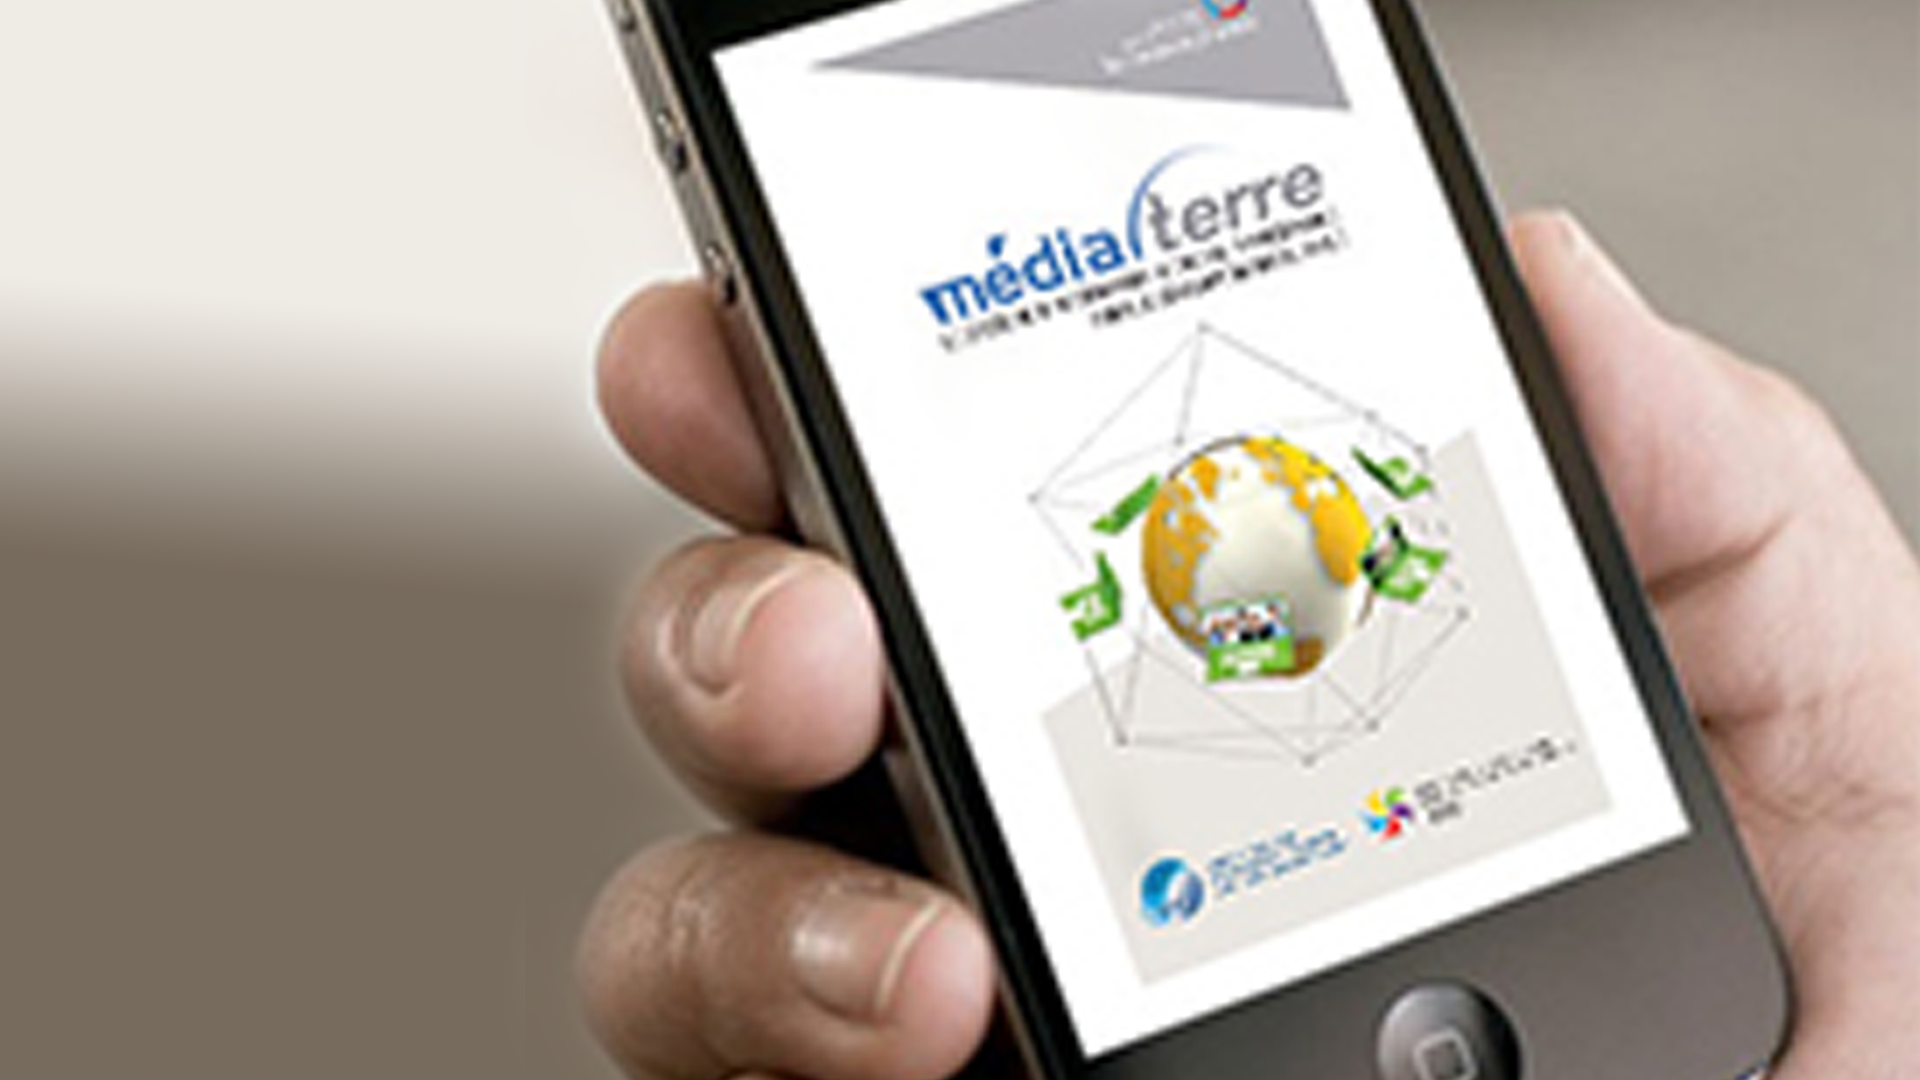 jour_de_la_terre_quebec_qc_france_fr_francophonie_org_application_mediaterre